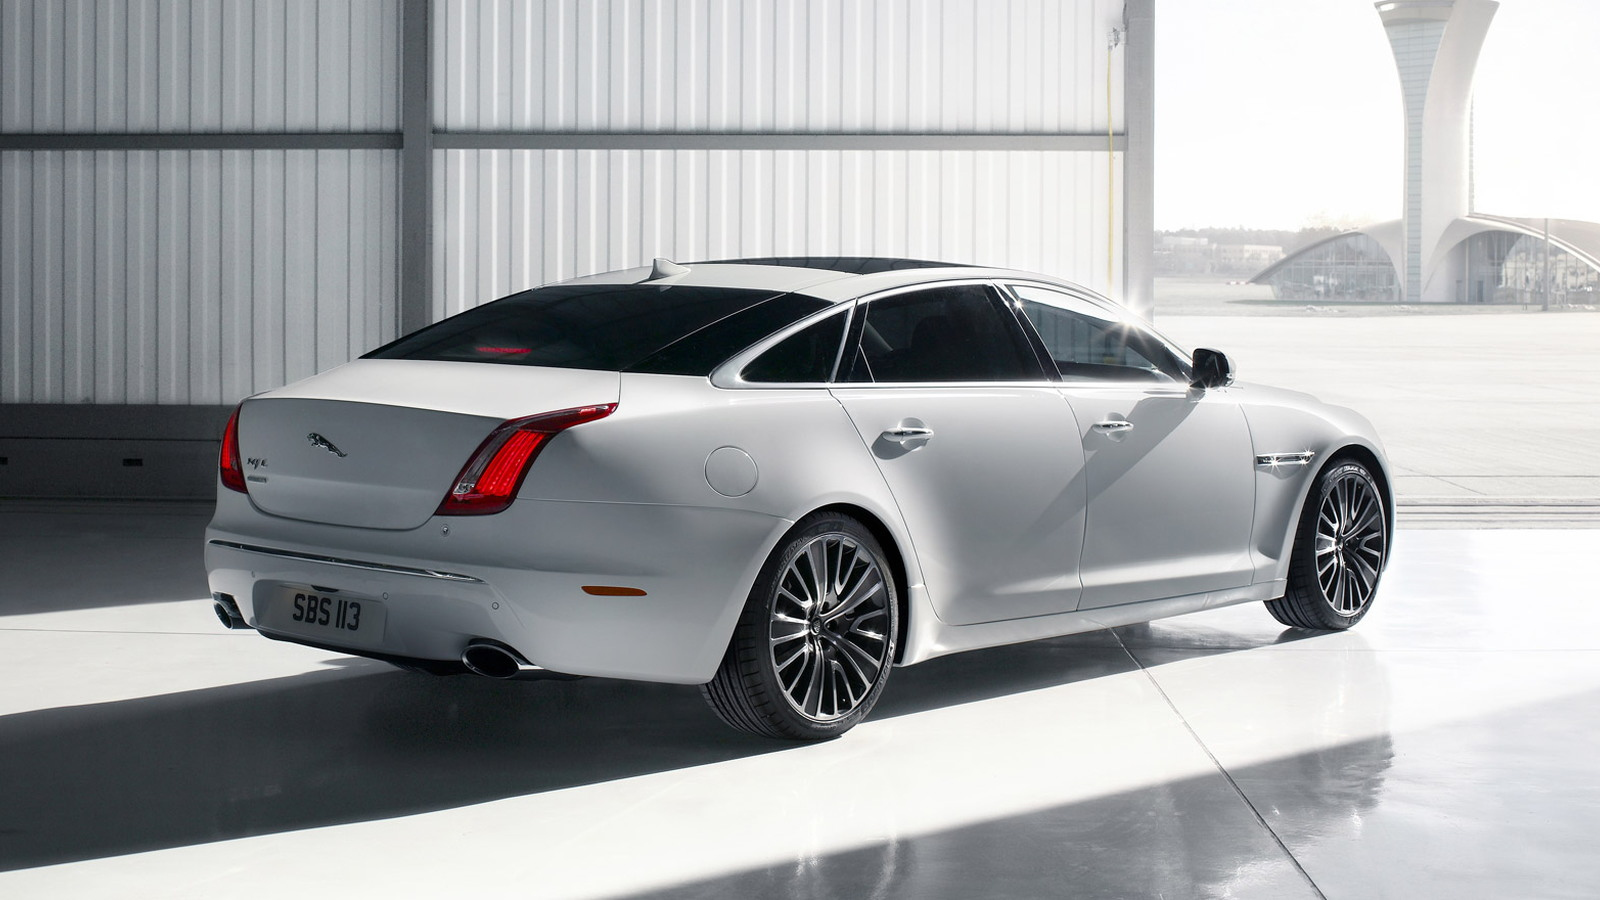 2013 Jaguar Xjl Ultimate The Most Luxurious Jaguar Ever Is The New Xj Ultimate Edition